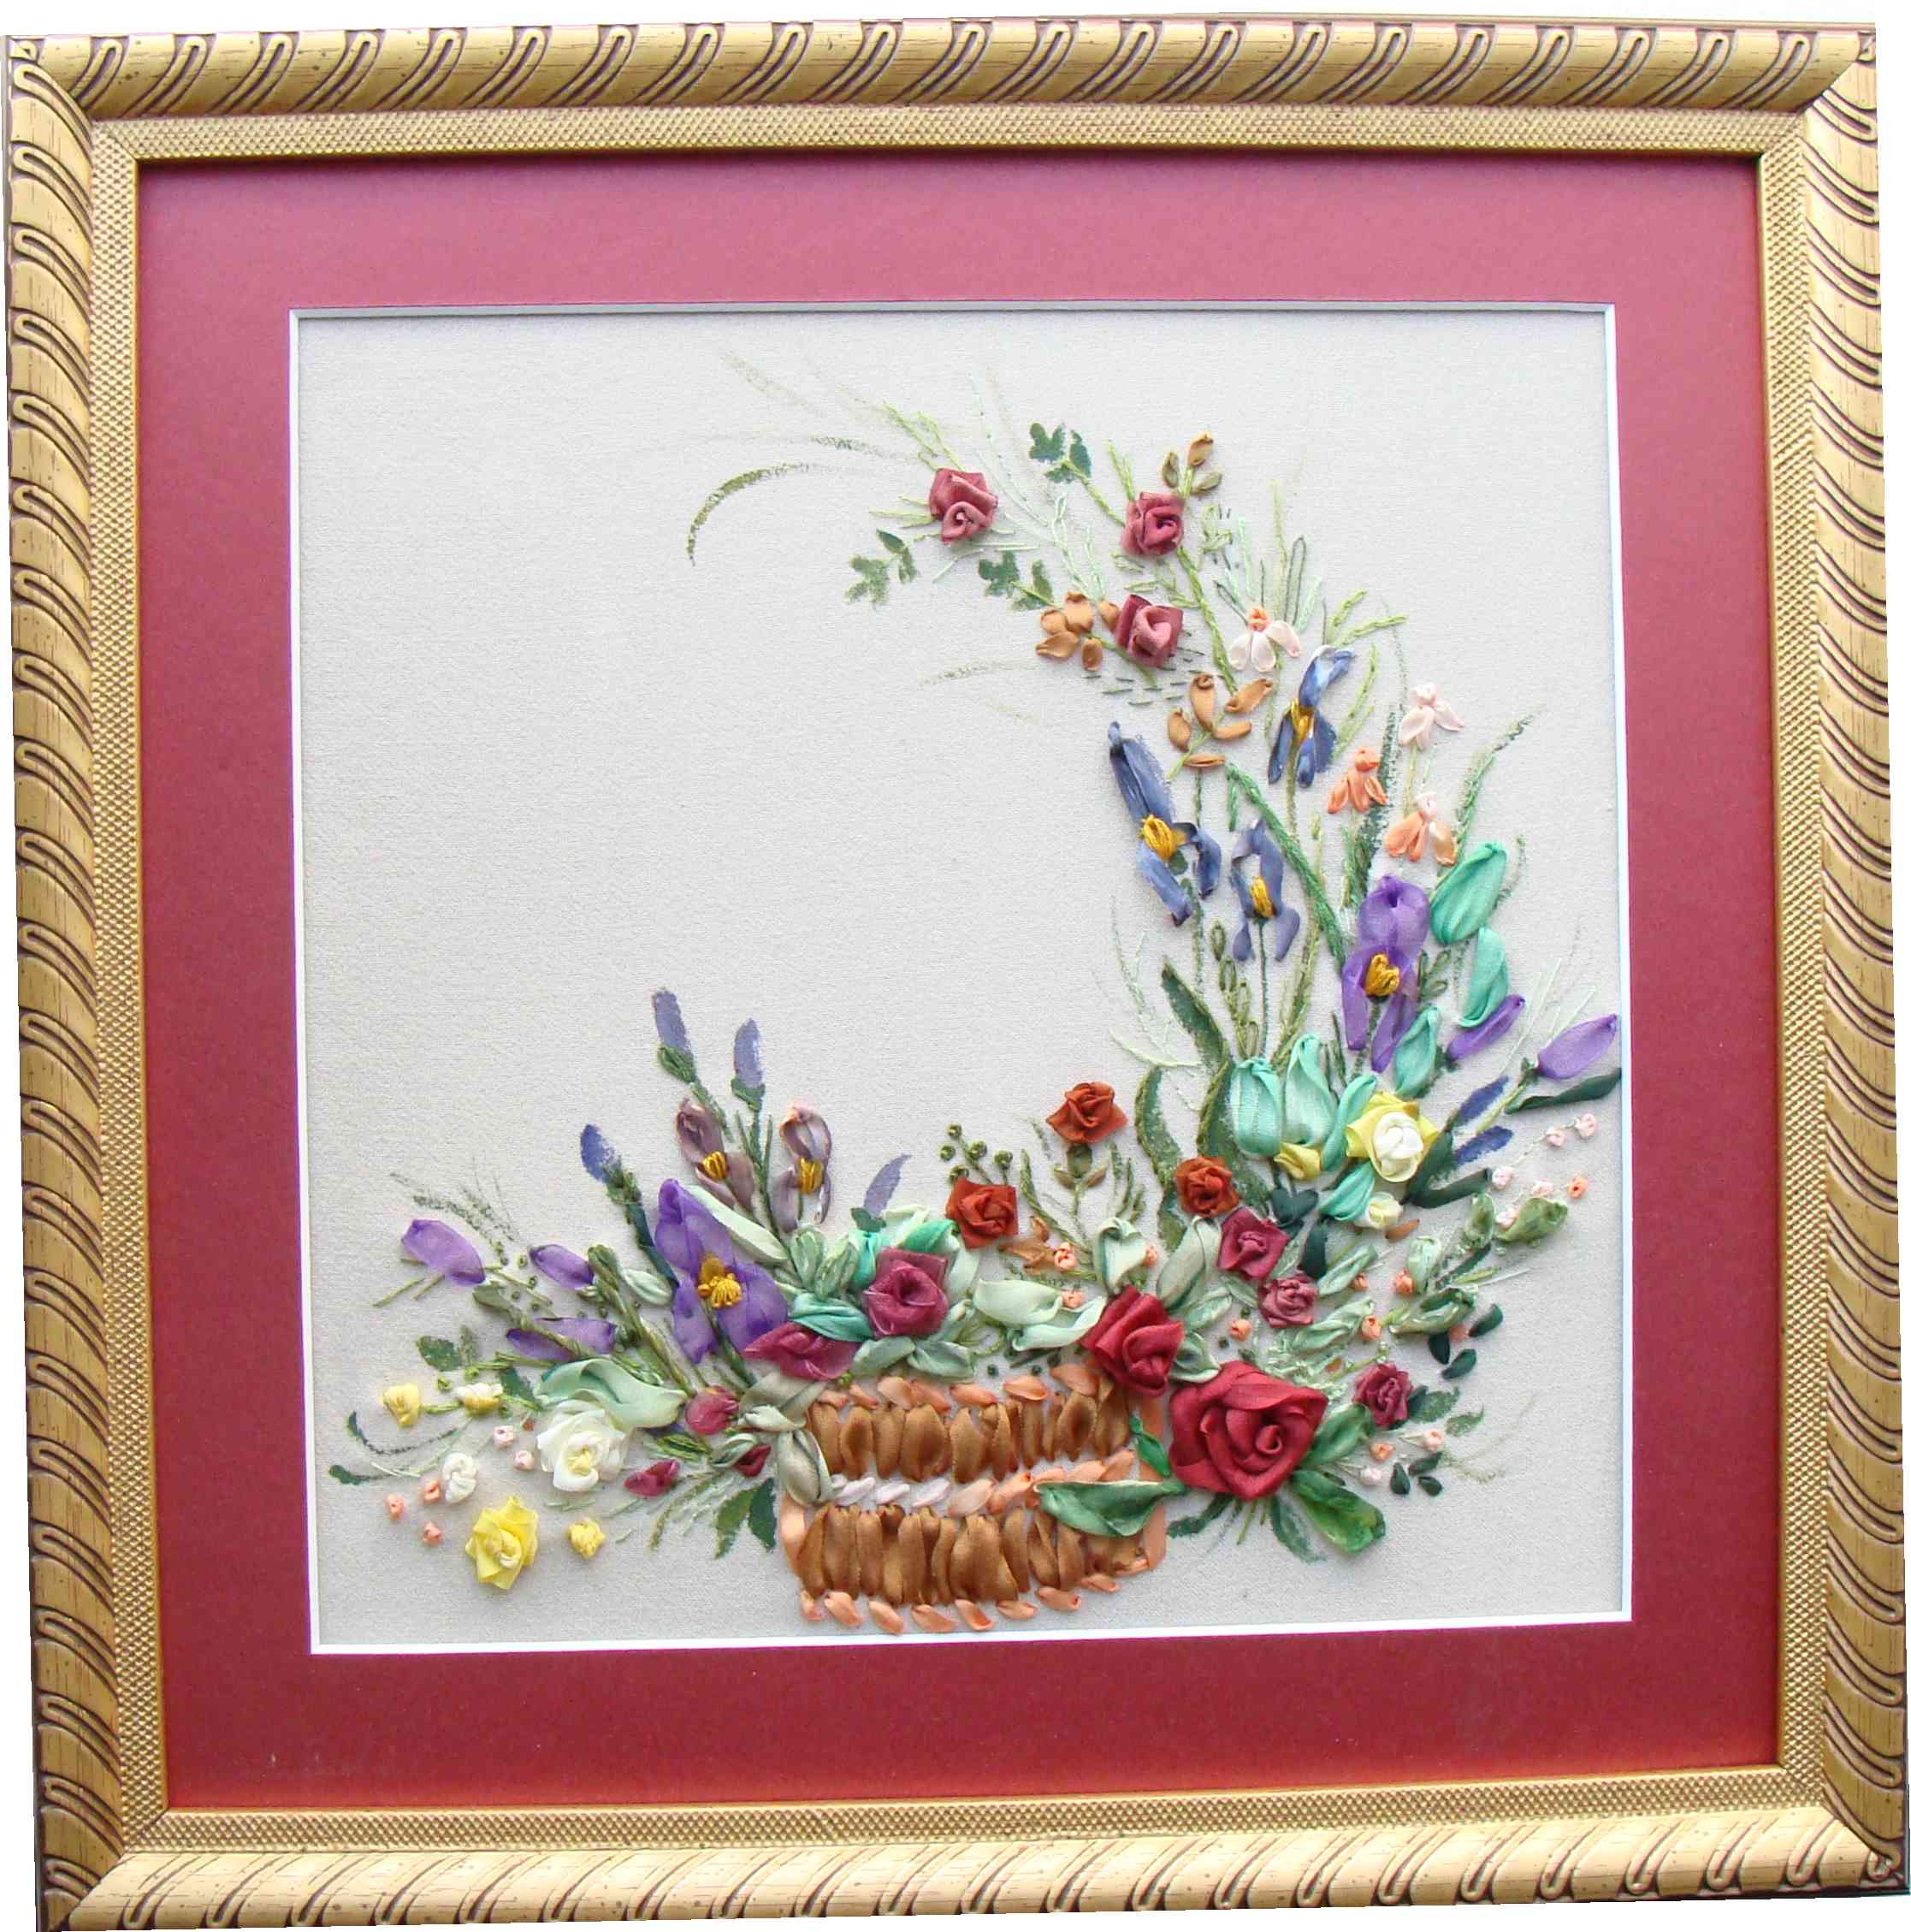 Hand-made presents, holiday gifts, ribbon embroidery kits, silk ribbon, Tatiana Popova designs, buy online, embroidered wall-hanging samples, art, embroidery kits buy in Europe, painting background for embroidery, mauve silk, natural silk ribbon for embroidery.